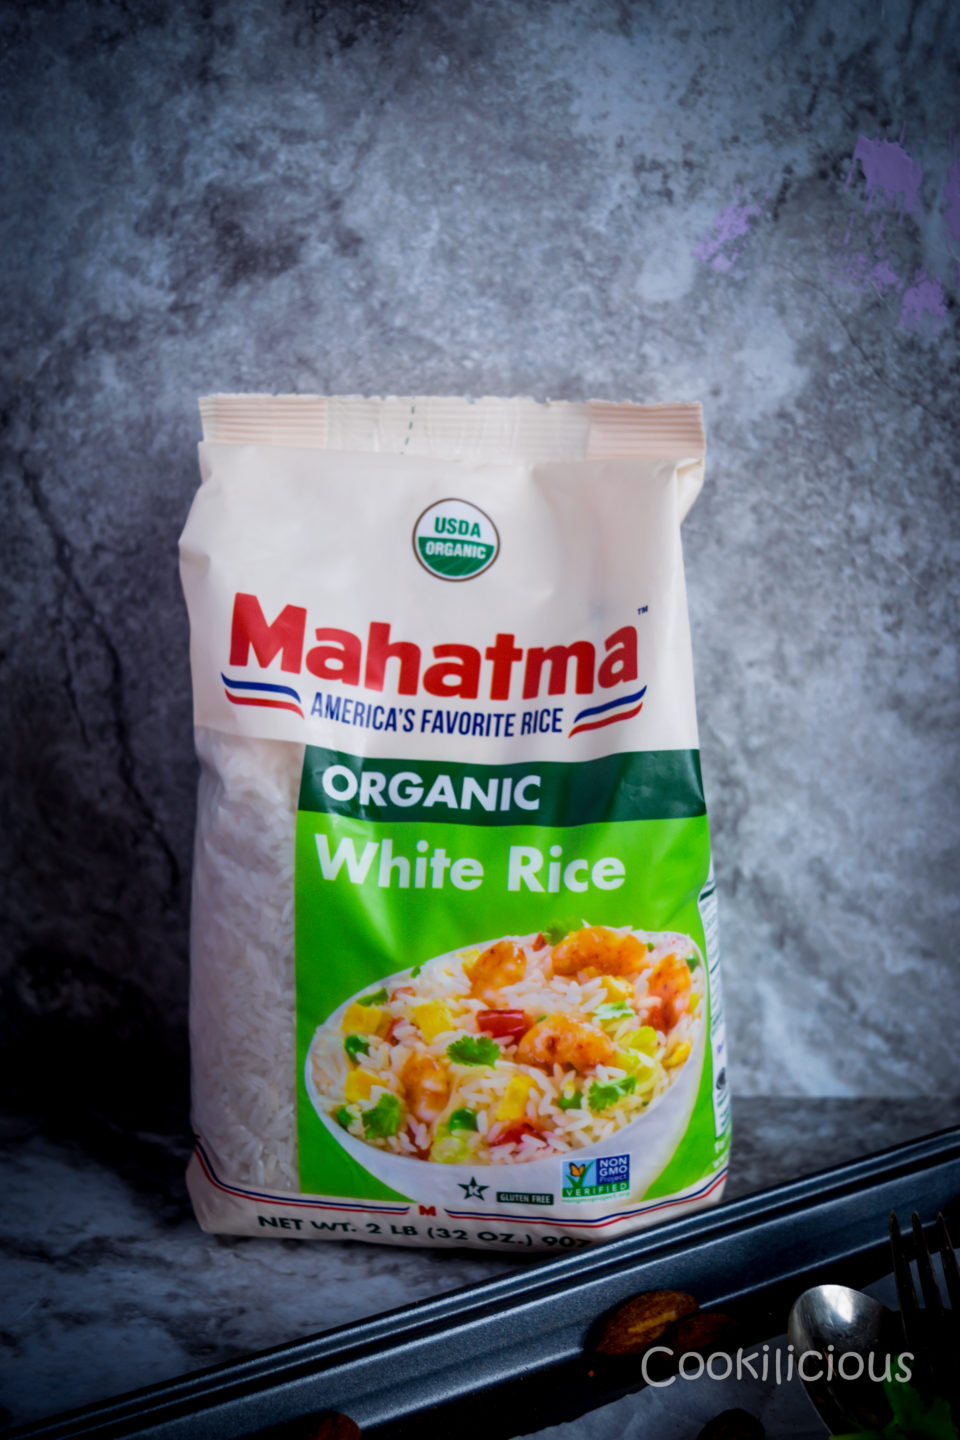 Image of a bag of Mahatma Organic white rice to make dosa batter